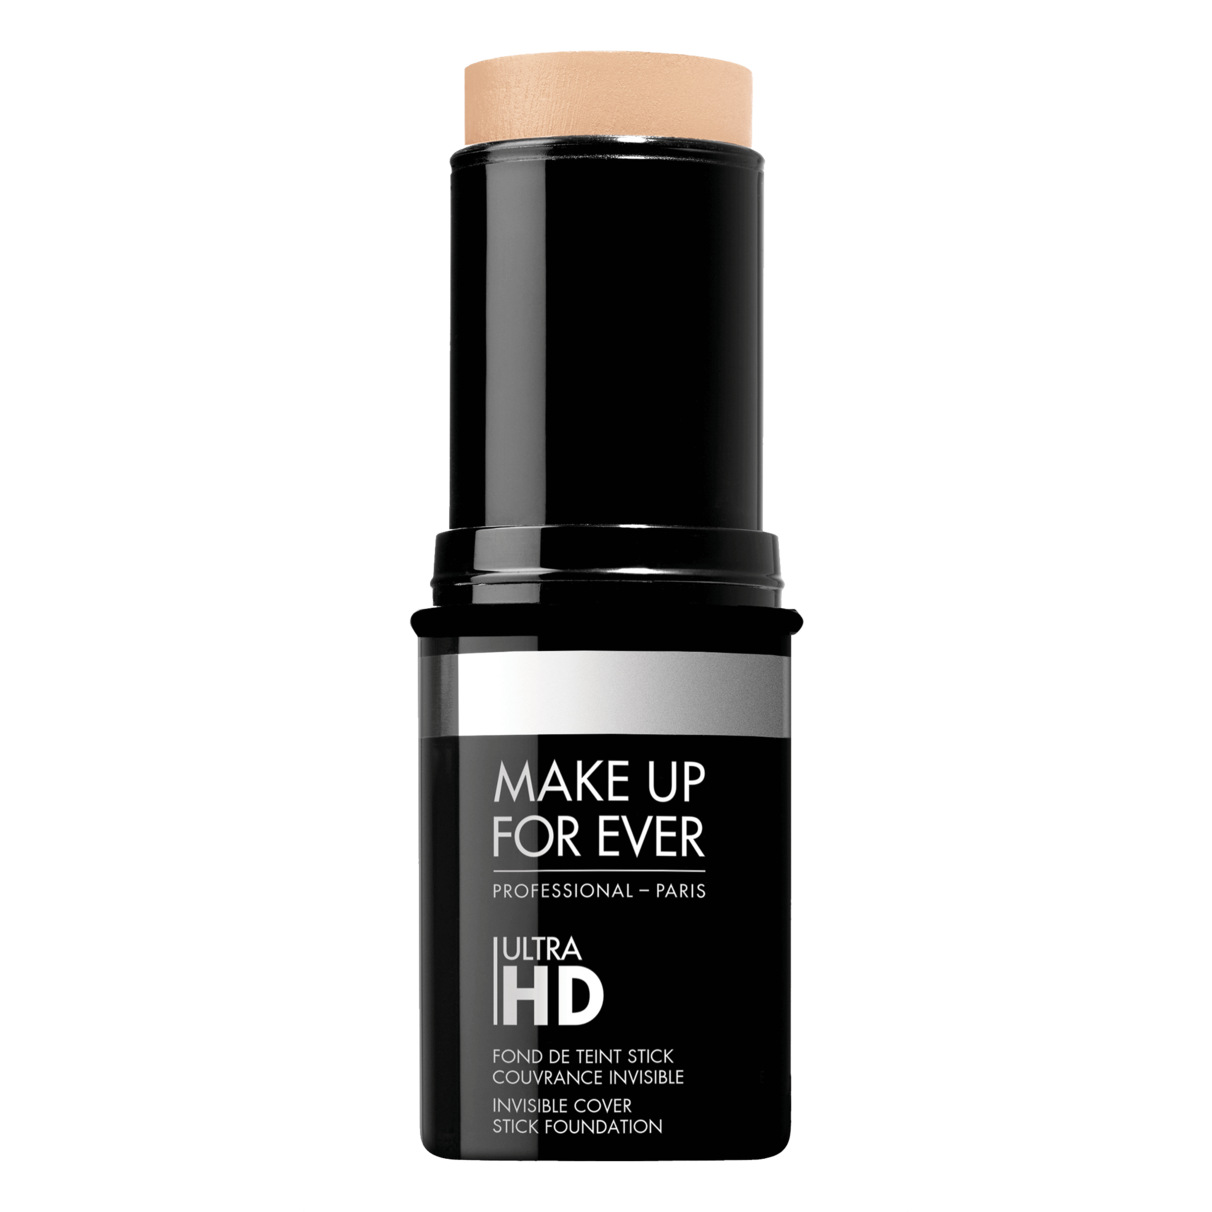 Make Up For Ever ULTRA HD Stick Foundation in R230 Ivory